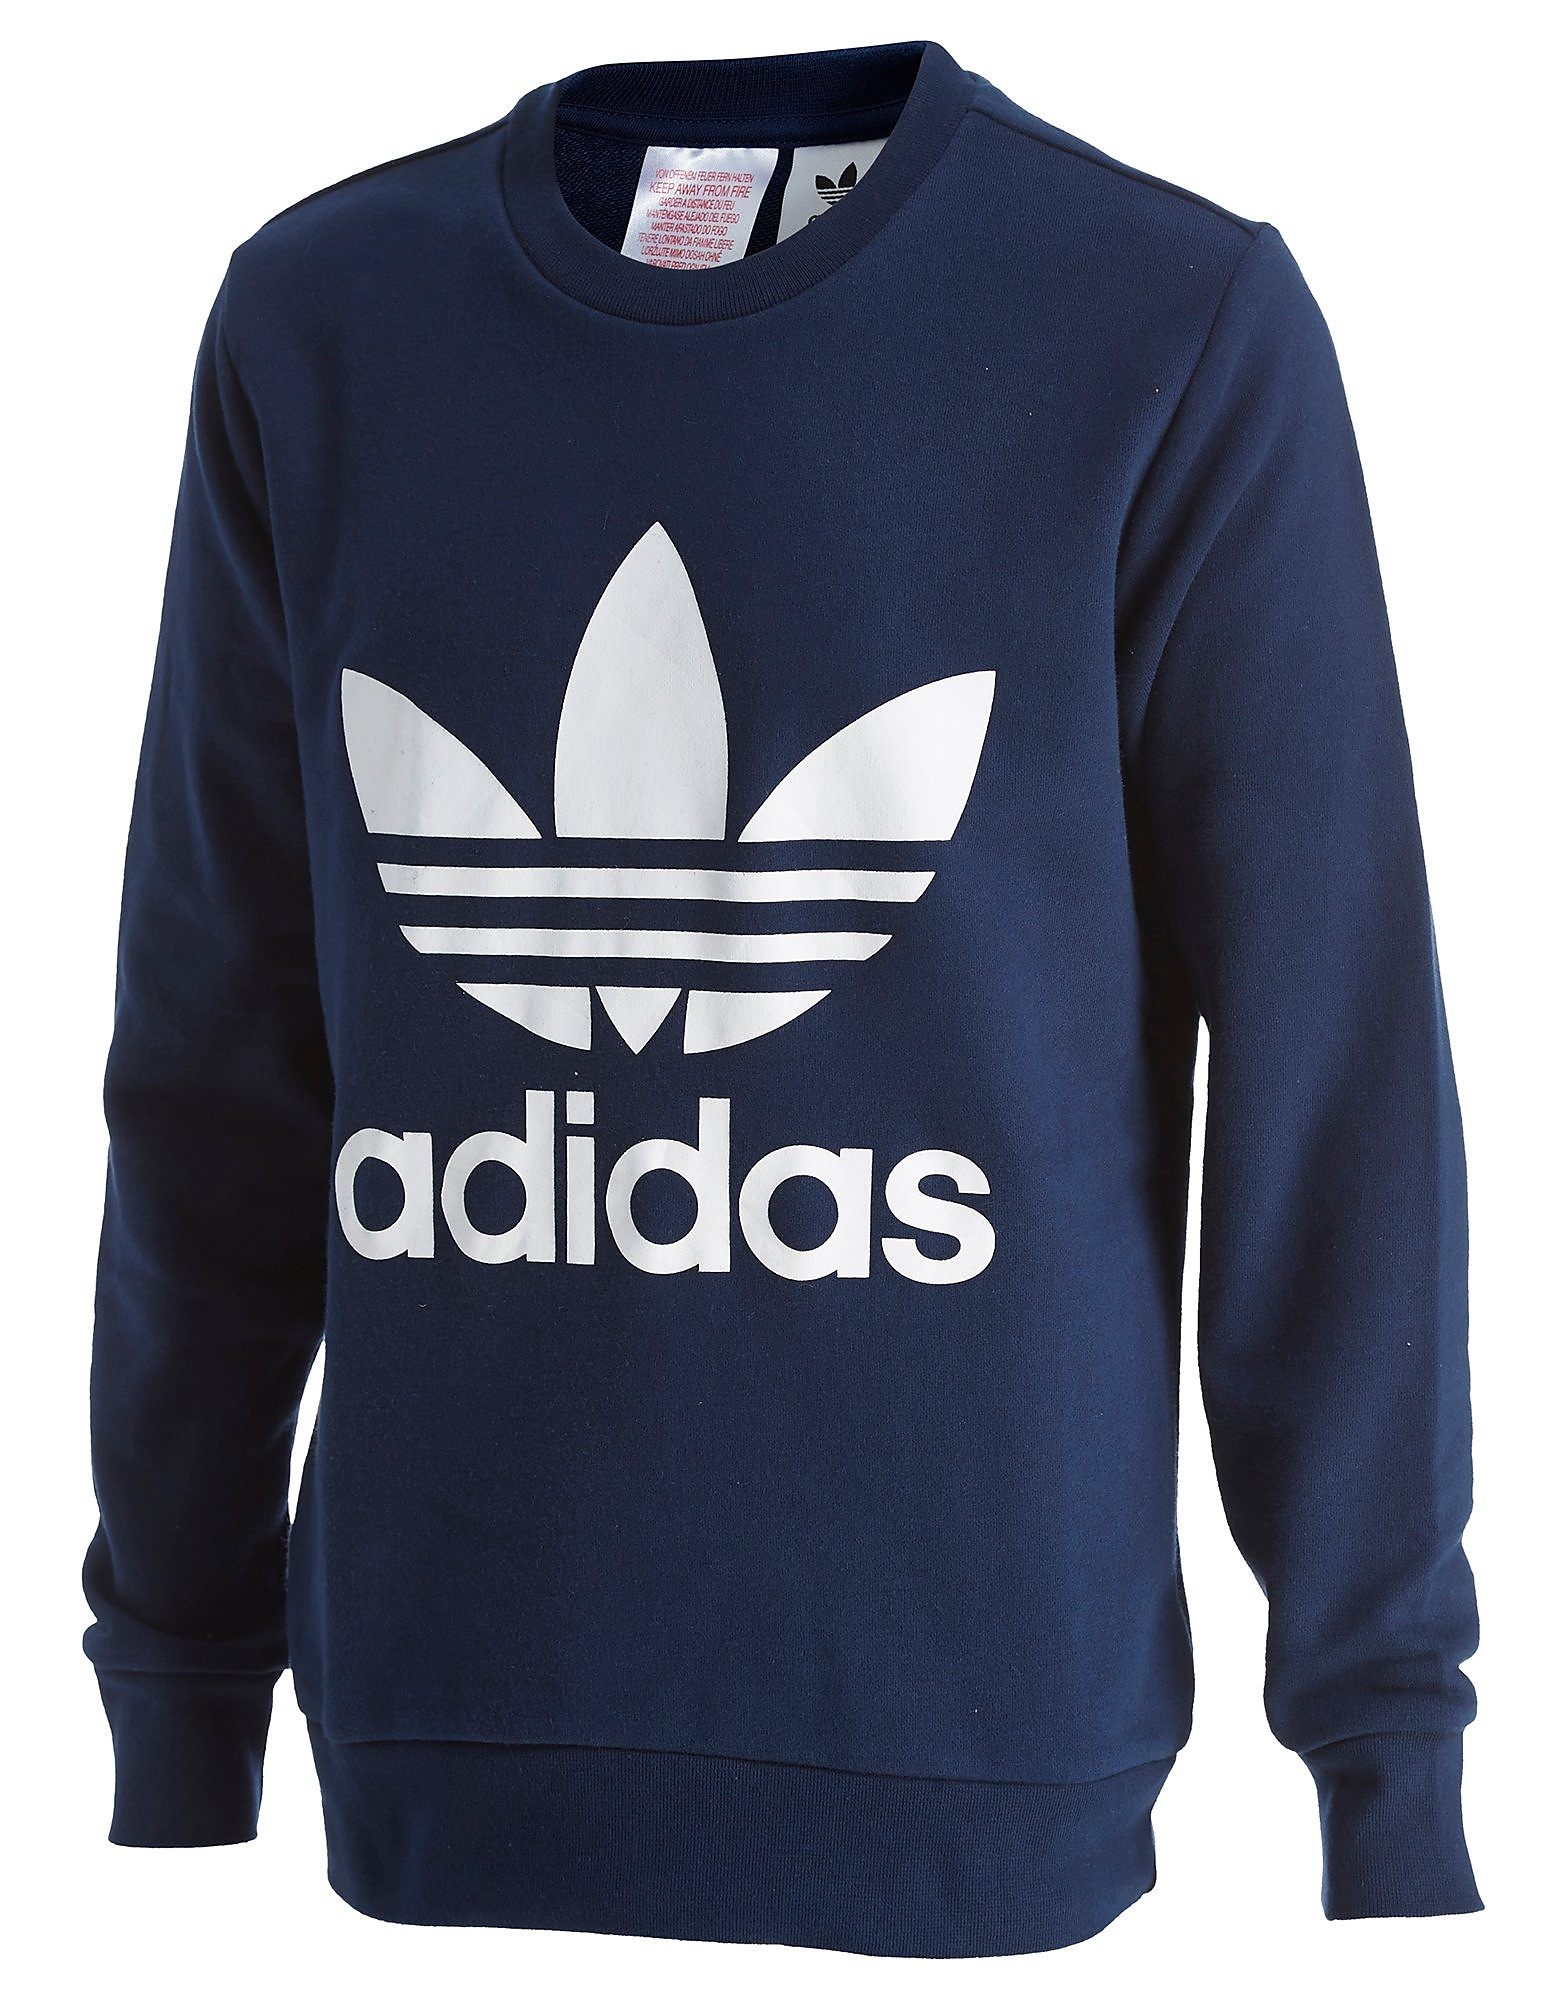 adidas Originals Adicolor Crew Sweatshirt Junior